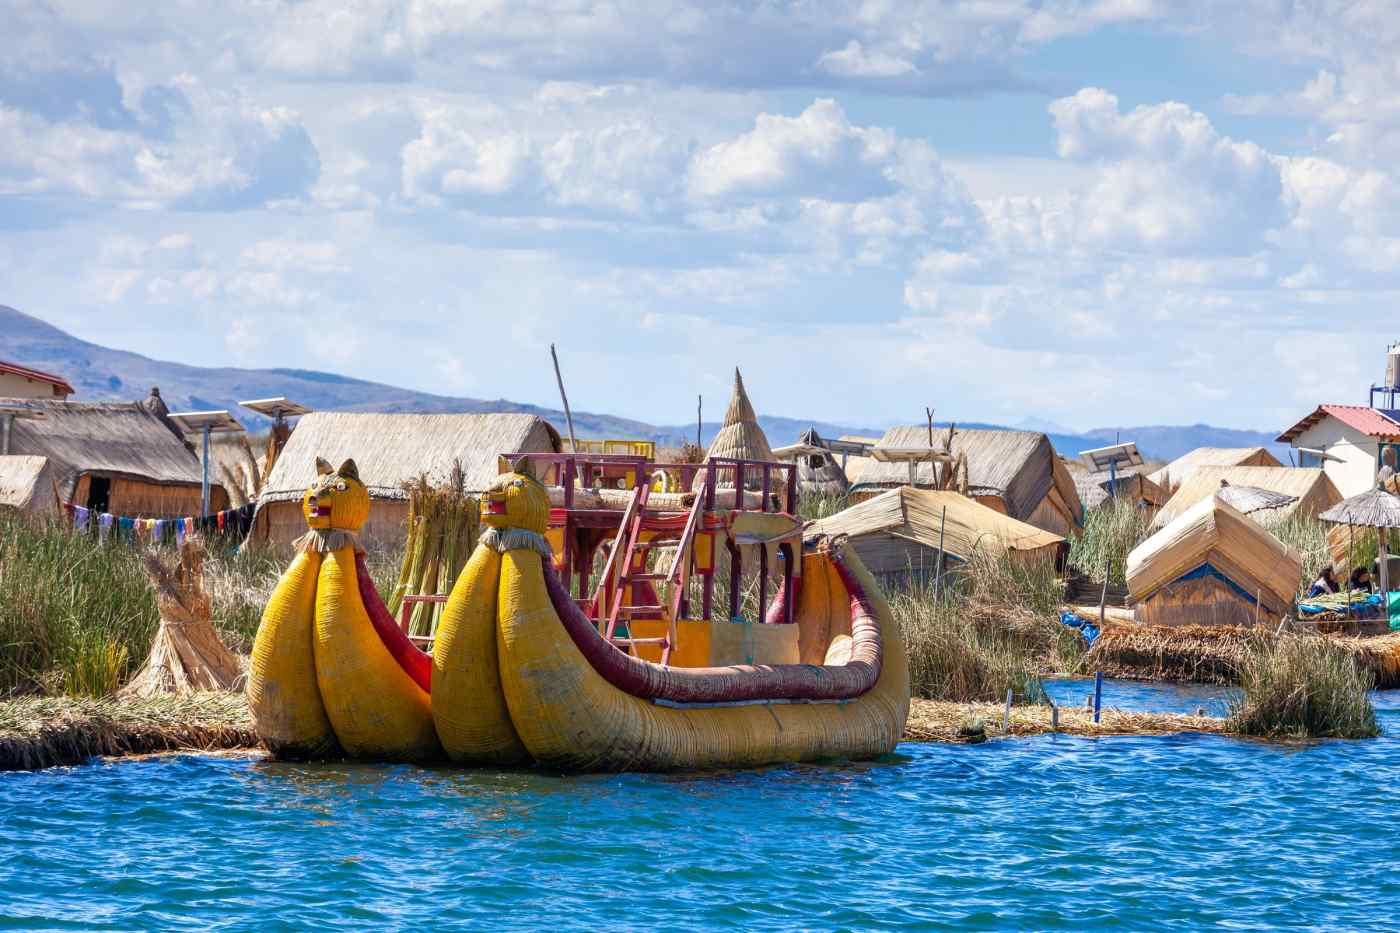 Traditional reed boat, Uros islands